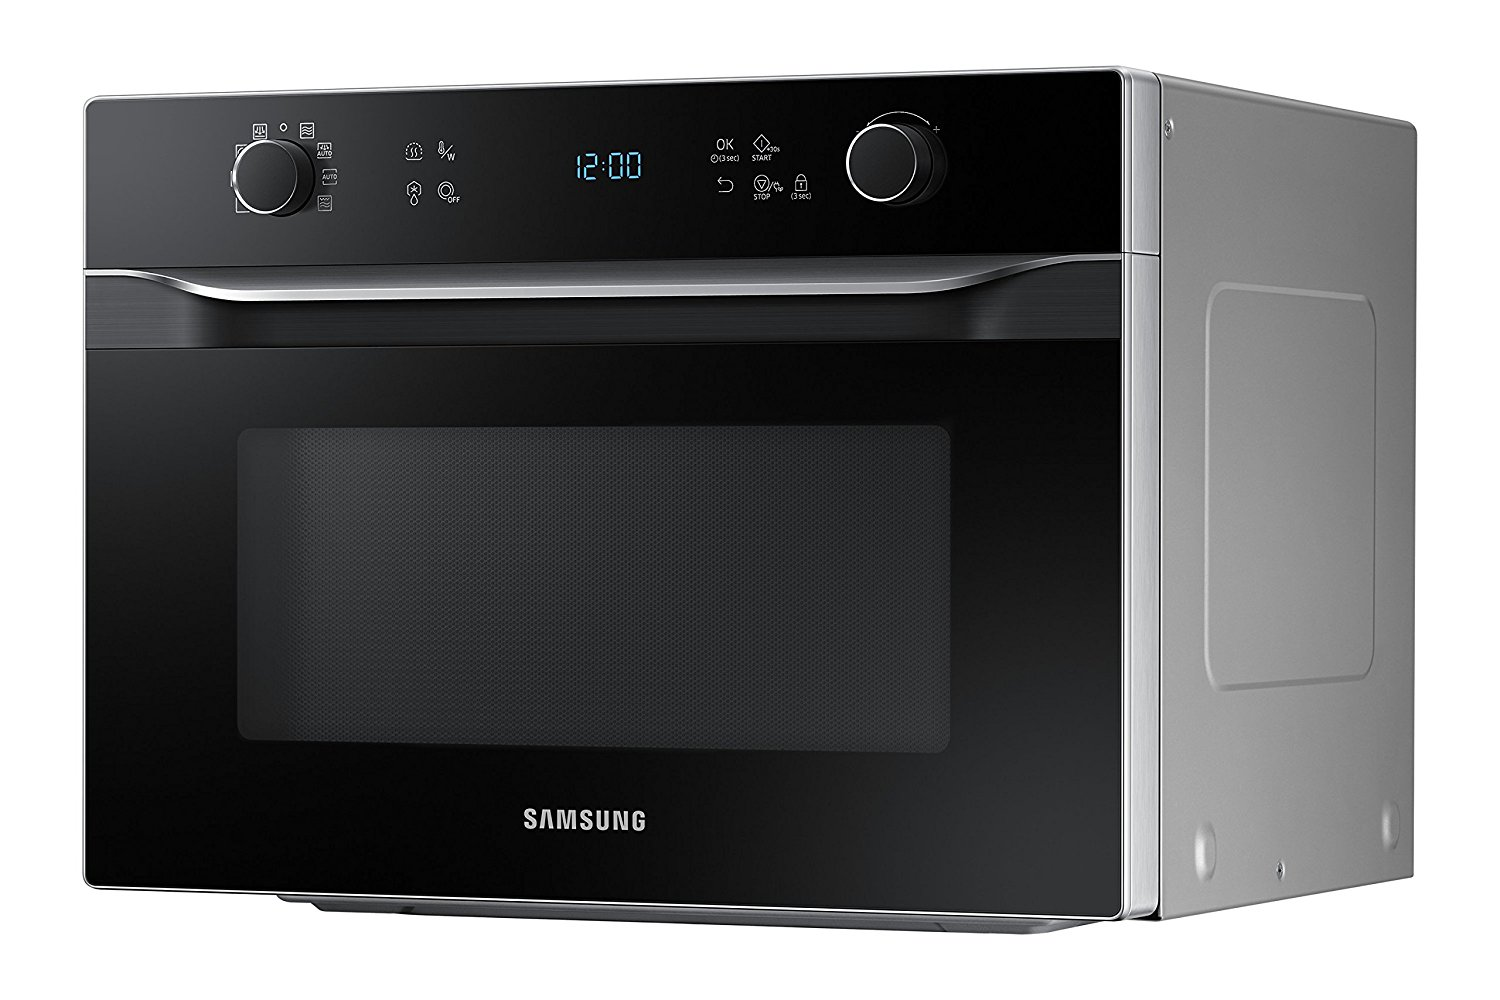 Samsung 35L Convection microwave oven